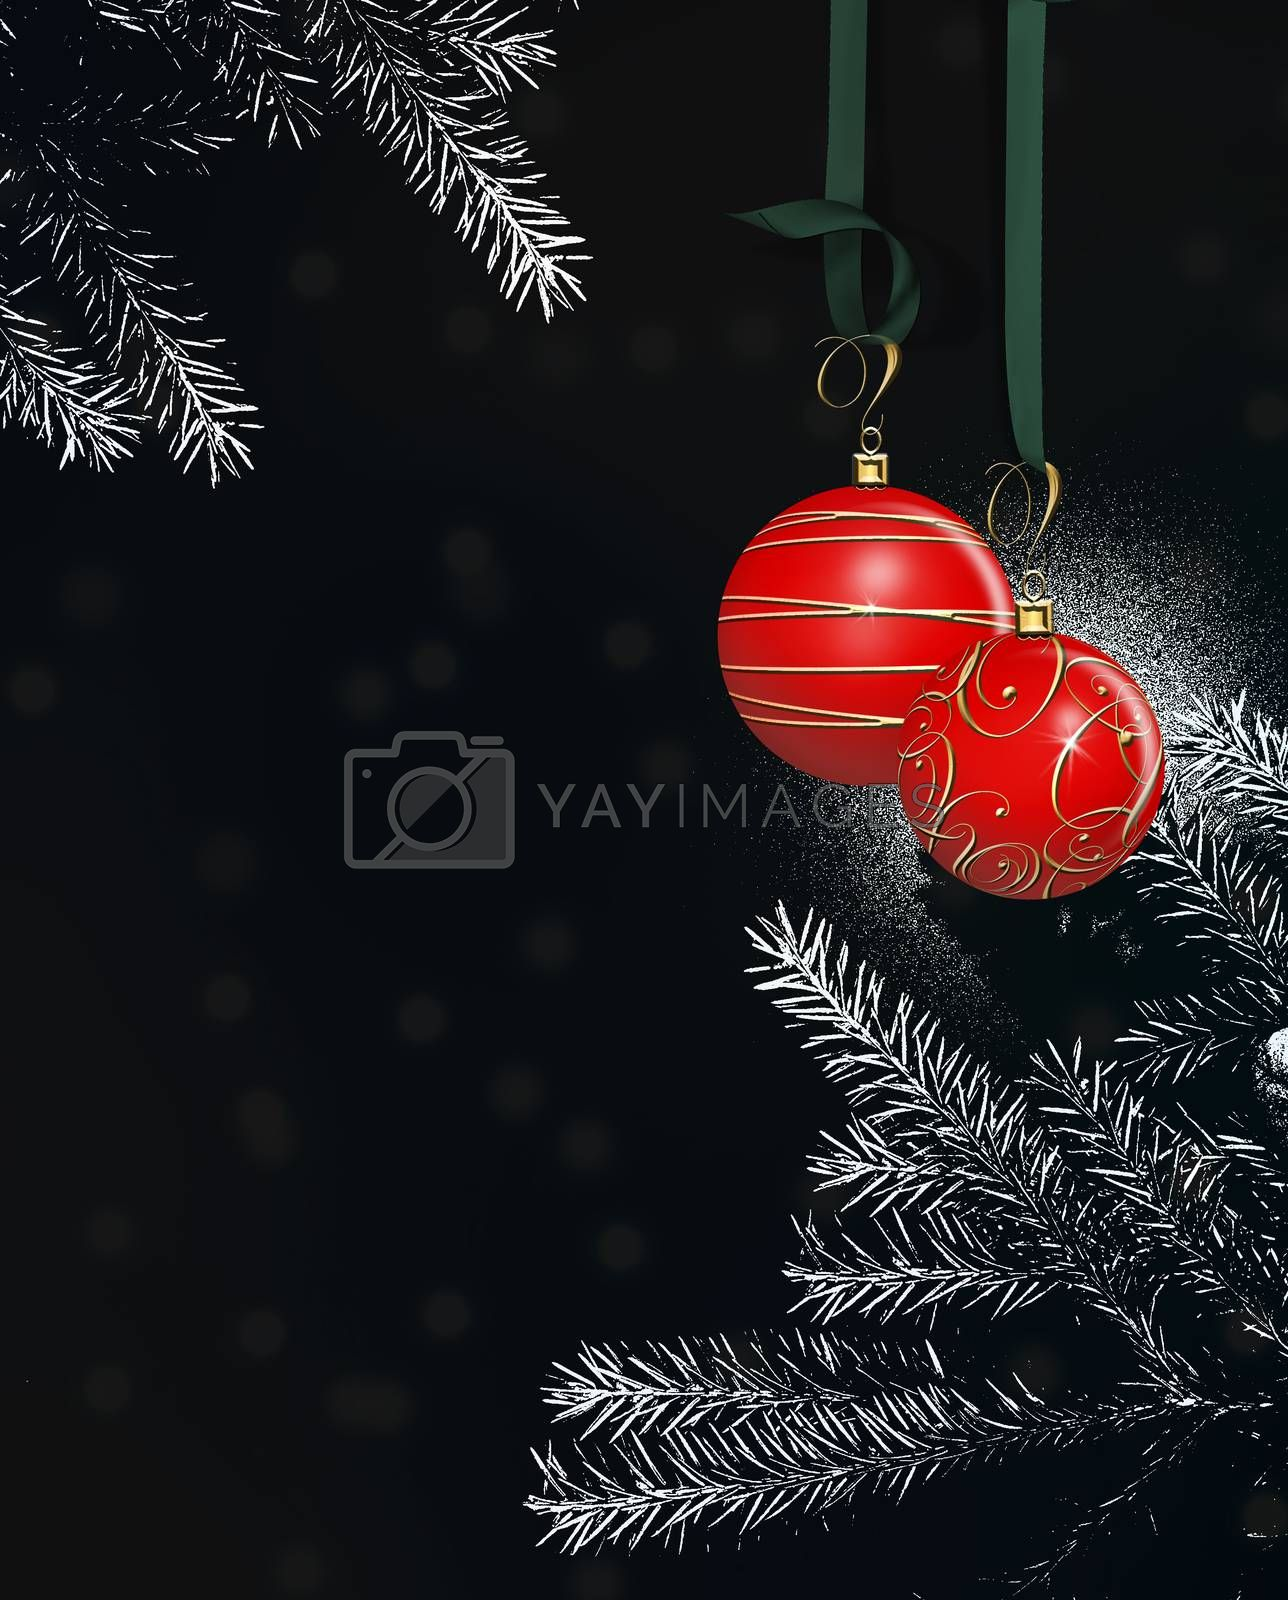 Dramatic Christmas New Year card with hanging red balls baubles with gold decoration on black and white background of Christmas tree branches 3D illustration. Place for text